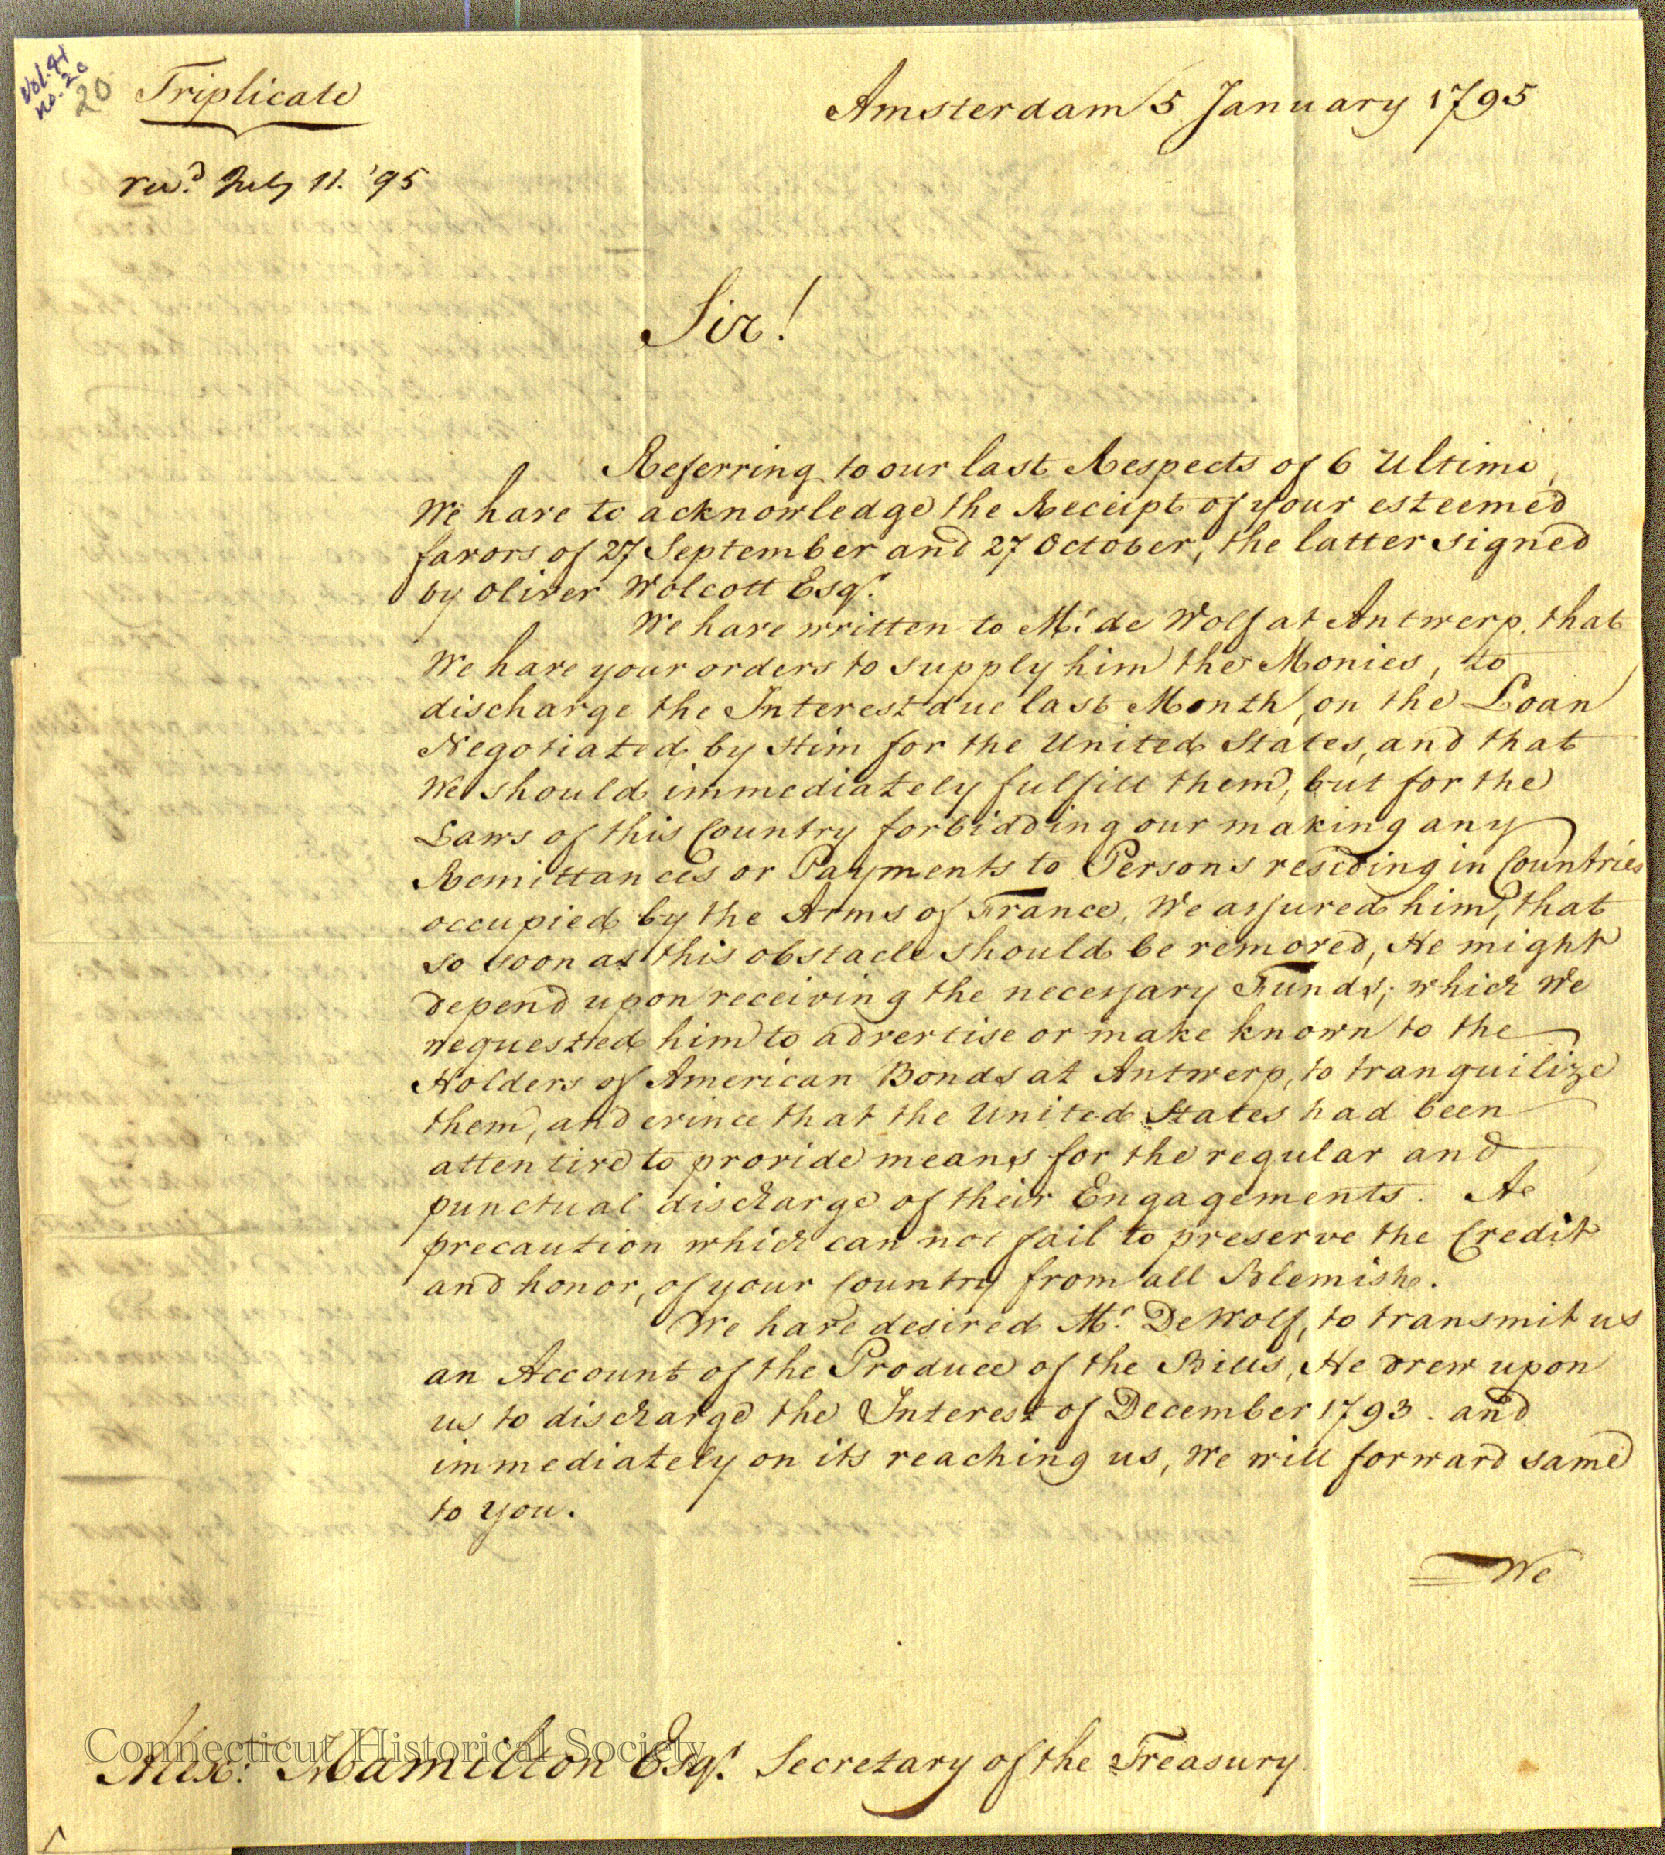 an analysis of jays treaty Guided primary source analysis activities learning from the source founding fathers, george washington, images, jay's treaty, john jay, new york, supreme.